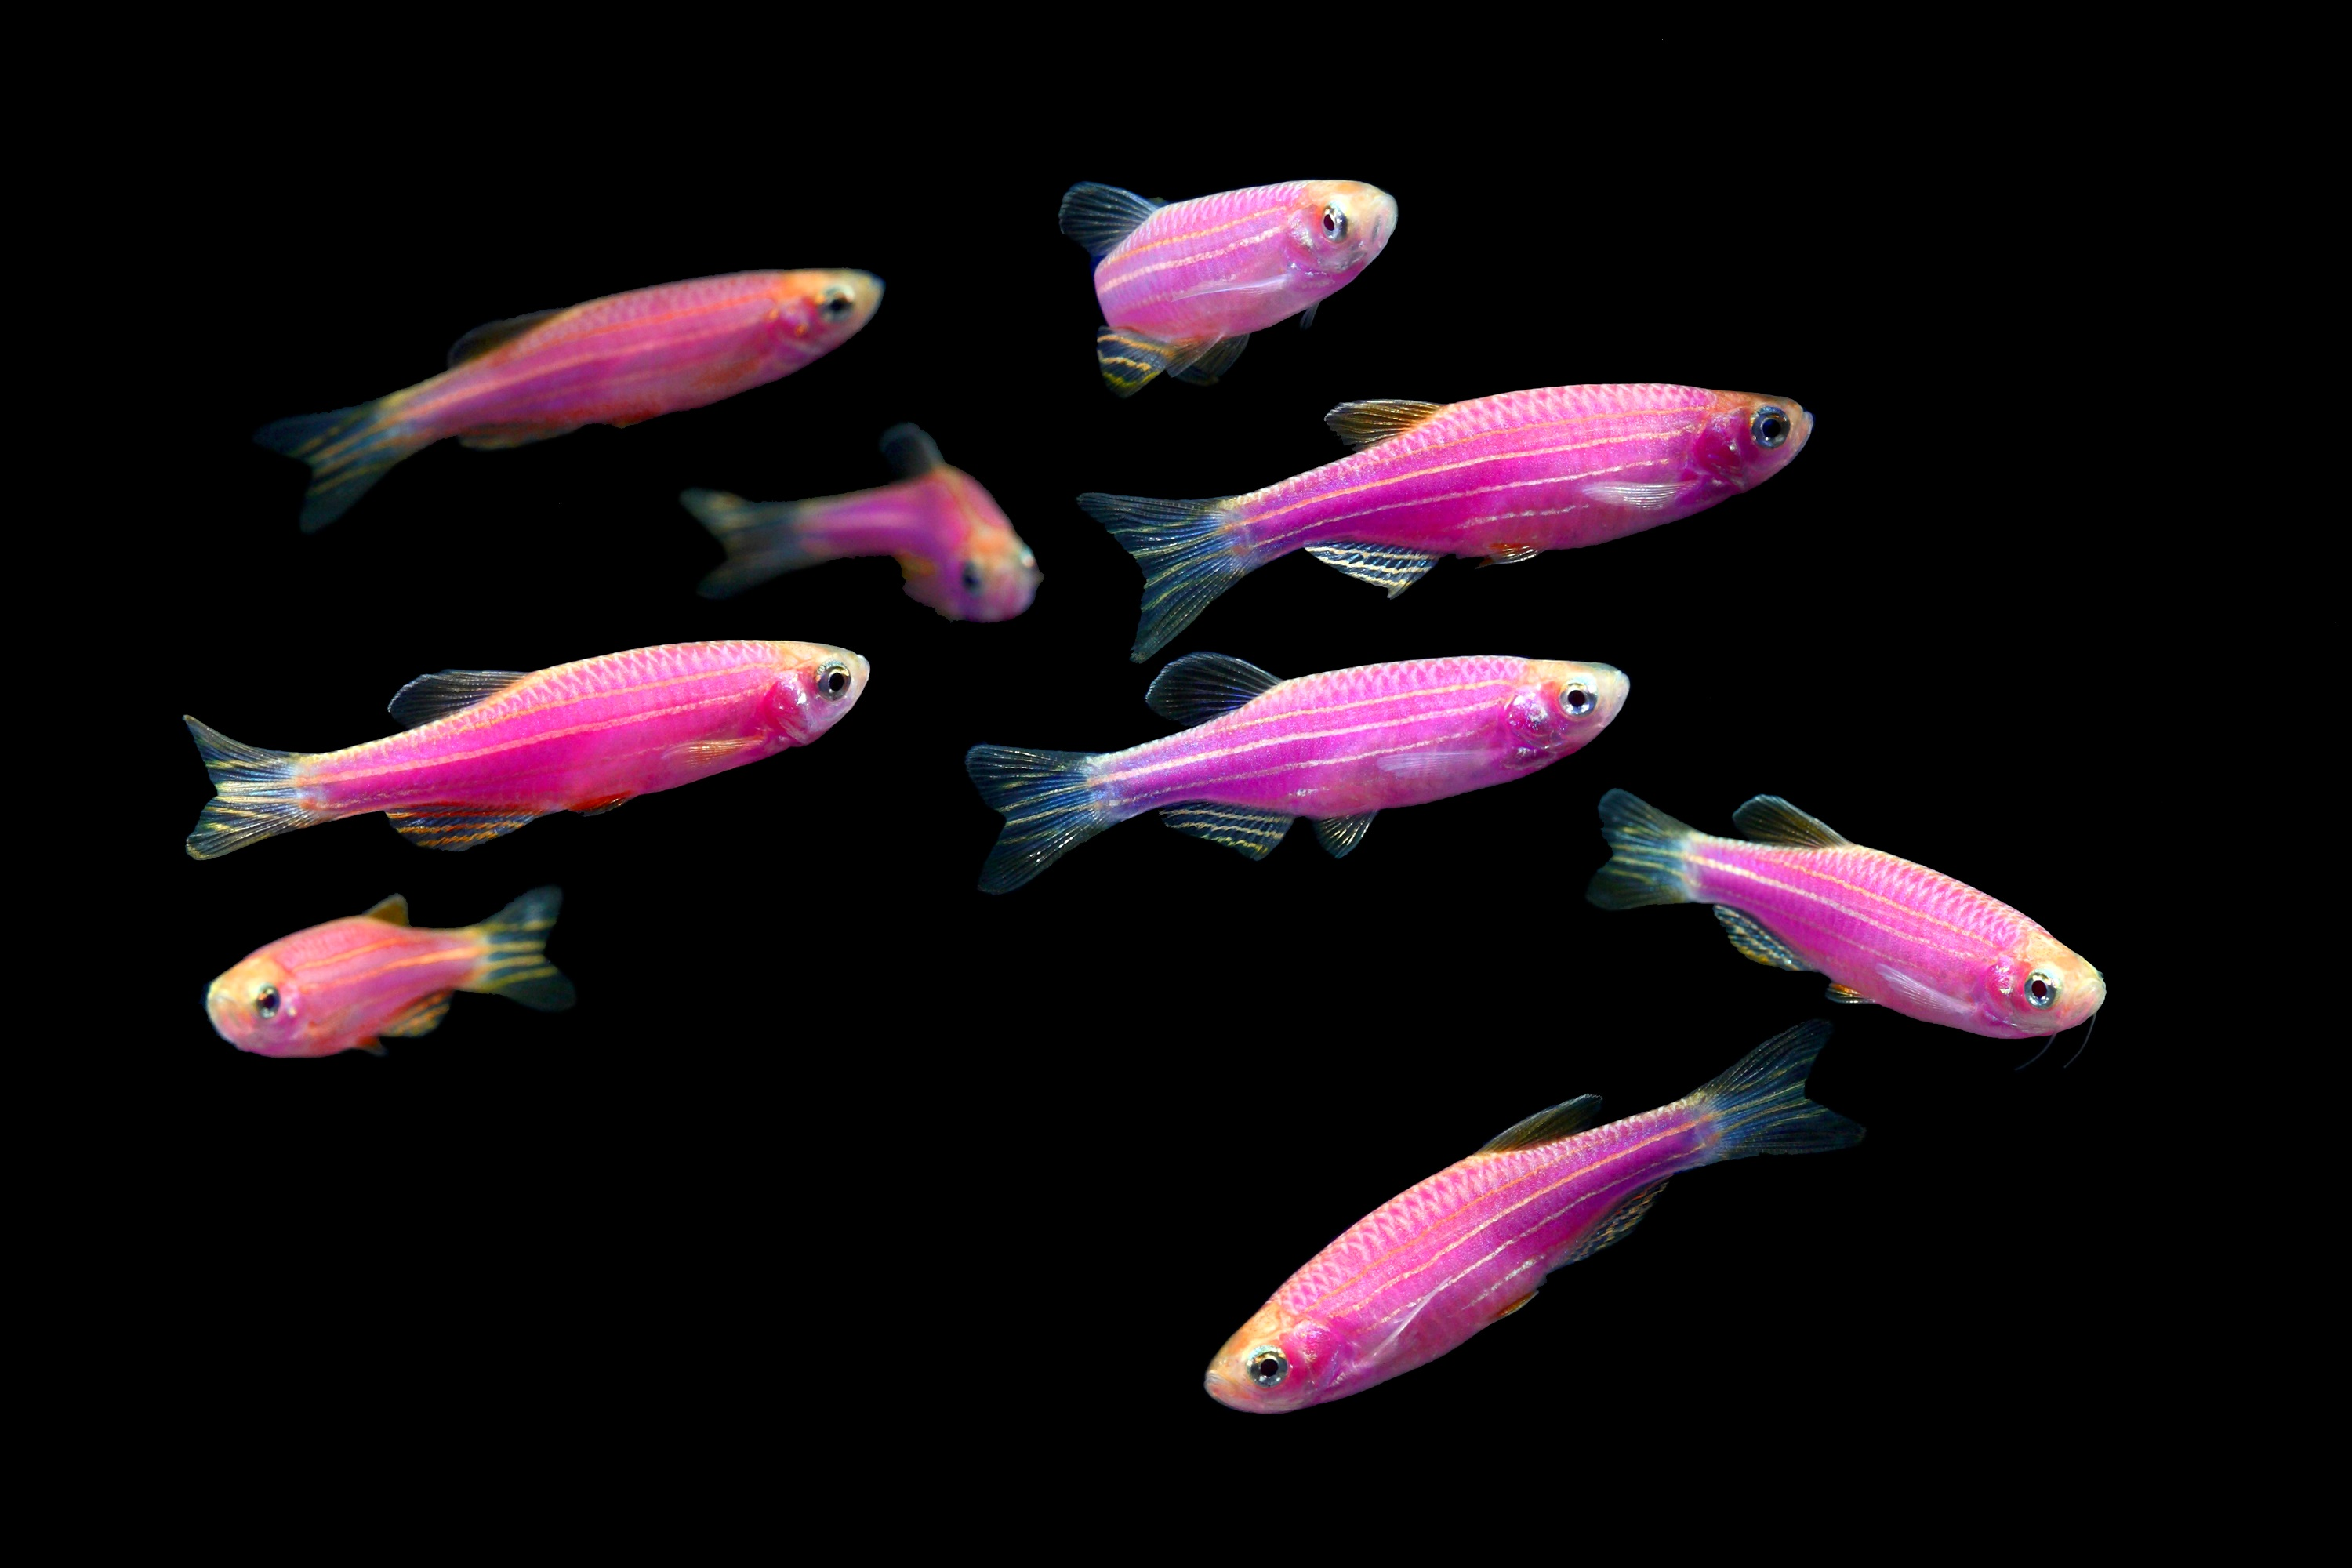 glofish-danio-rerio-purple-danio-information-wiki-glofish-danio-for-sale-and-where-to-buy-aquatic-mag-1